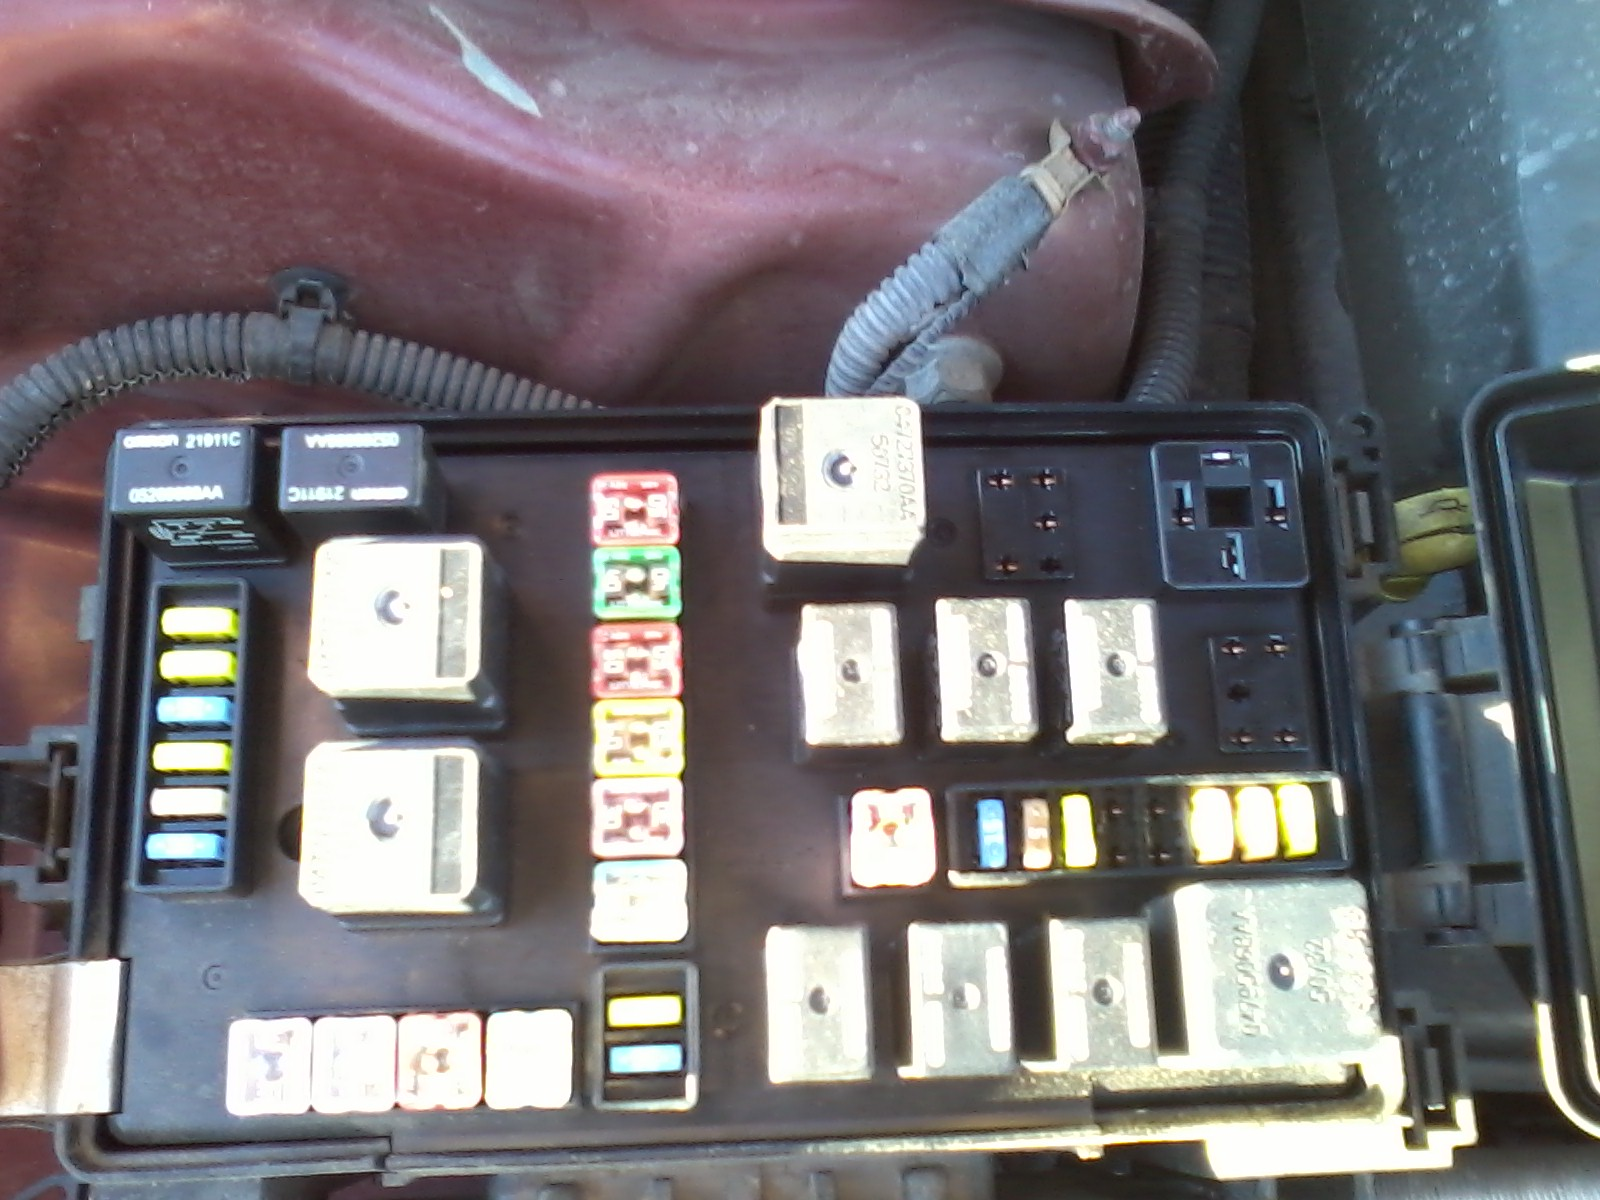 fuse box seems to be missing some fuses relays Fuse Box Surge Protectors fuse box seems to be missing some fuses relays 1125121557